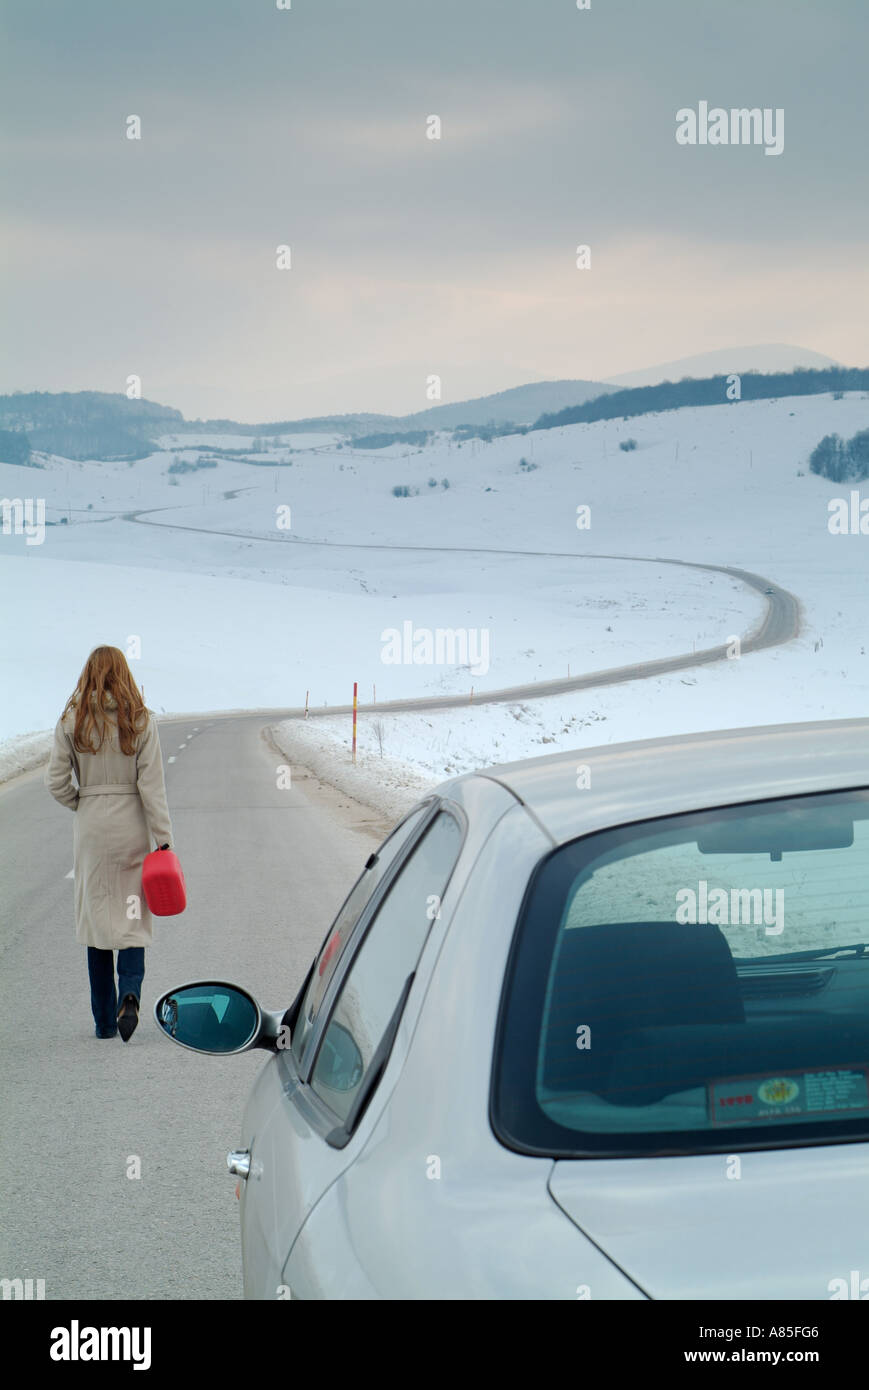 Woman Starts the Long Walk Along an Isolated Country Road in Winter to Find Fuel for Her Broken Down Car - Stock Image